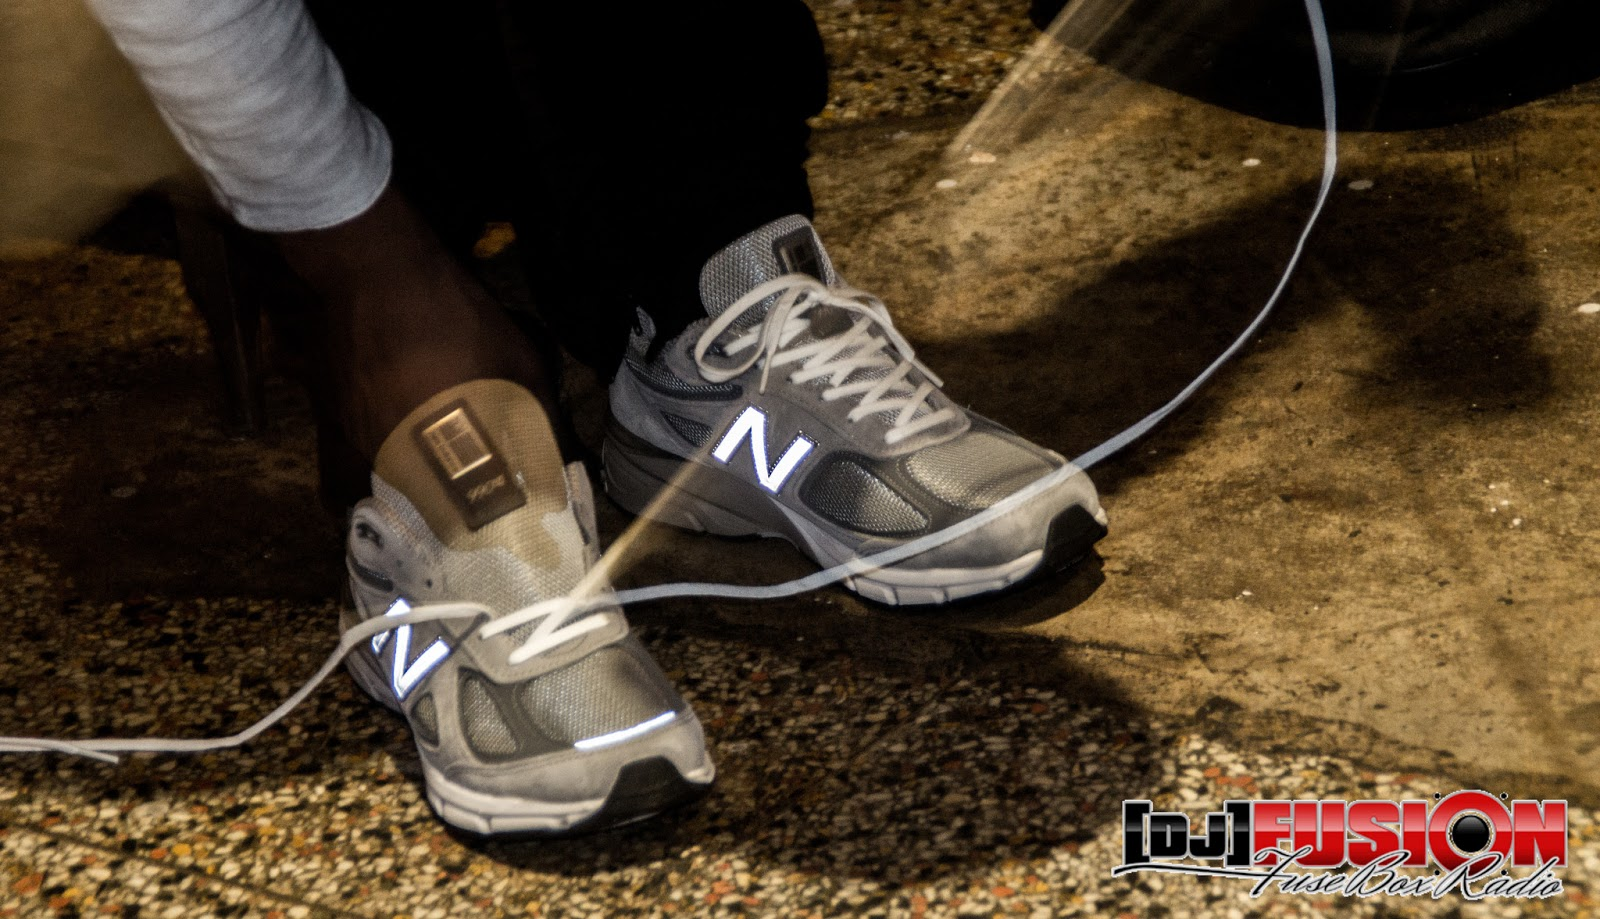 new balance shoes 990 kids against hunger coalition